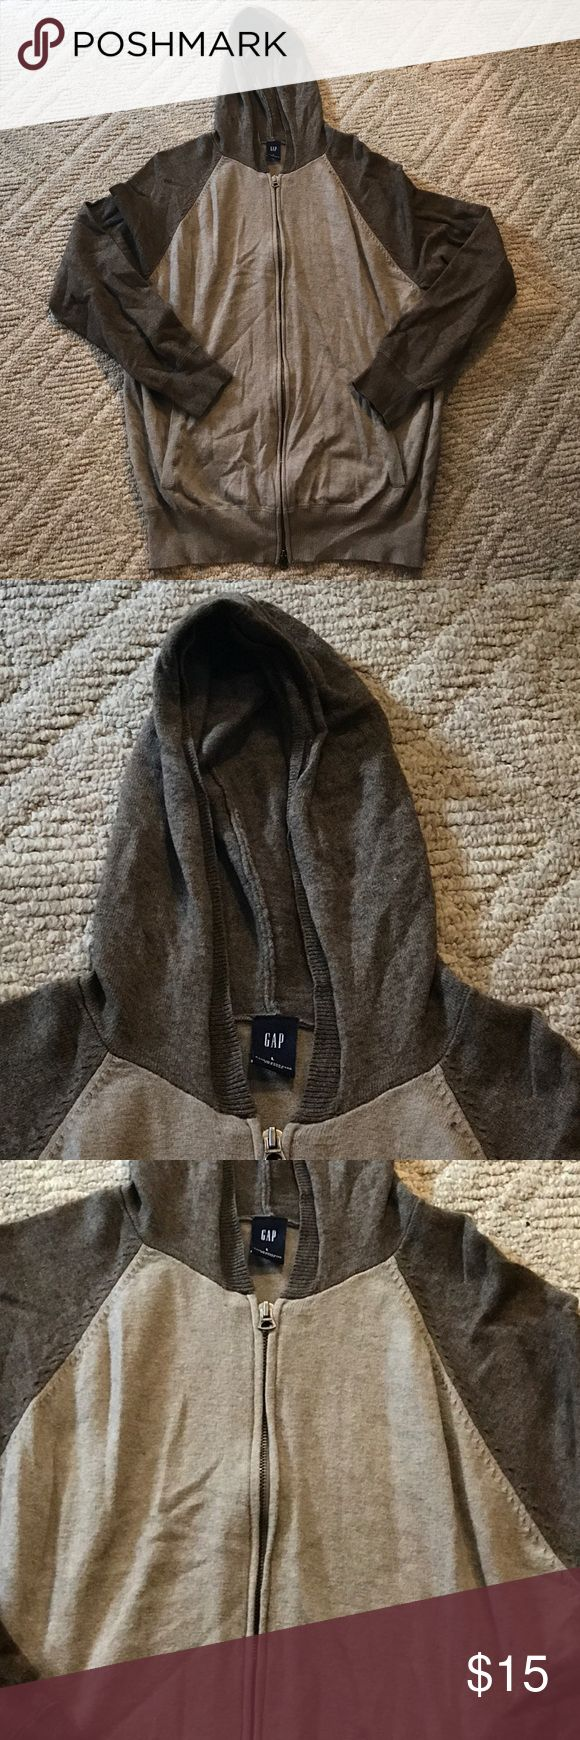 Men's gap jacket size large Men's gap jacket size large. Great condition.  brown and tan. GAP Jackets & Coats